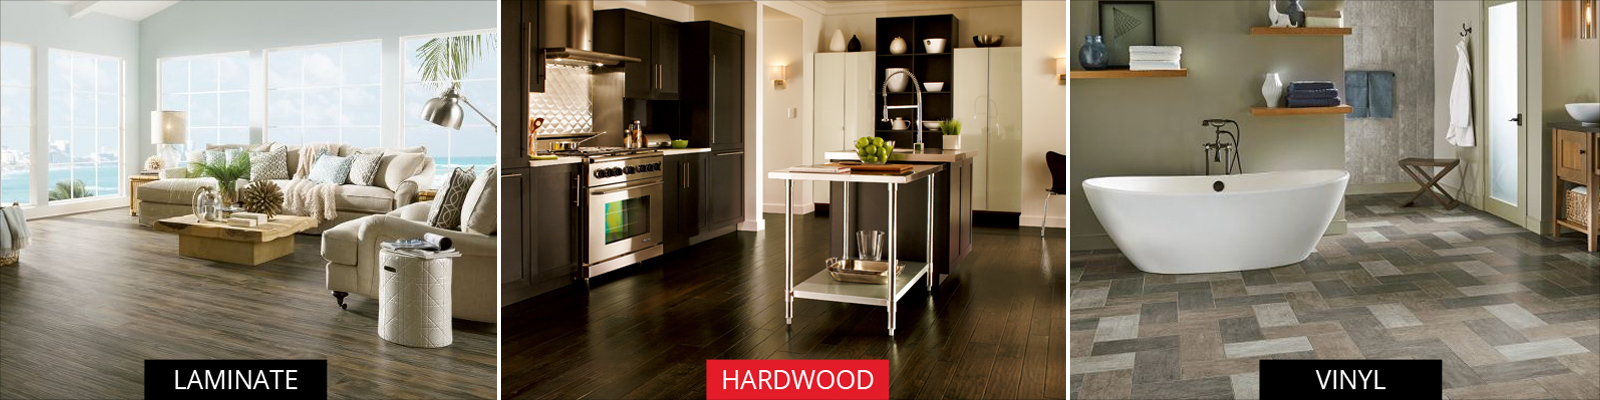 Brampton Hardwood Flooring Decor Floors Carpet Laminate Awesome Floor And Tile Decor Woodbridge